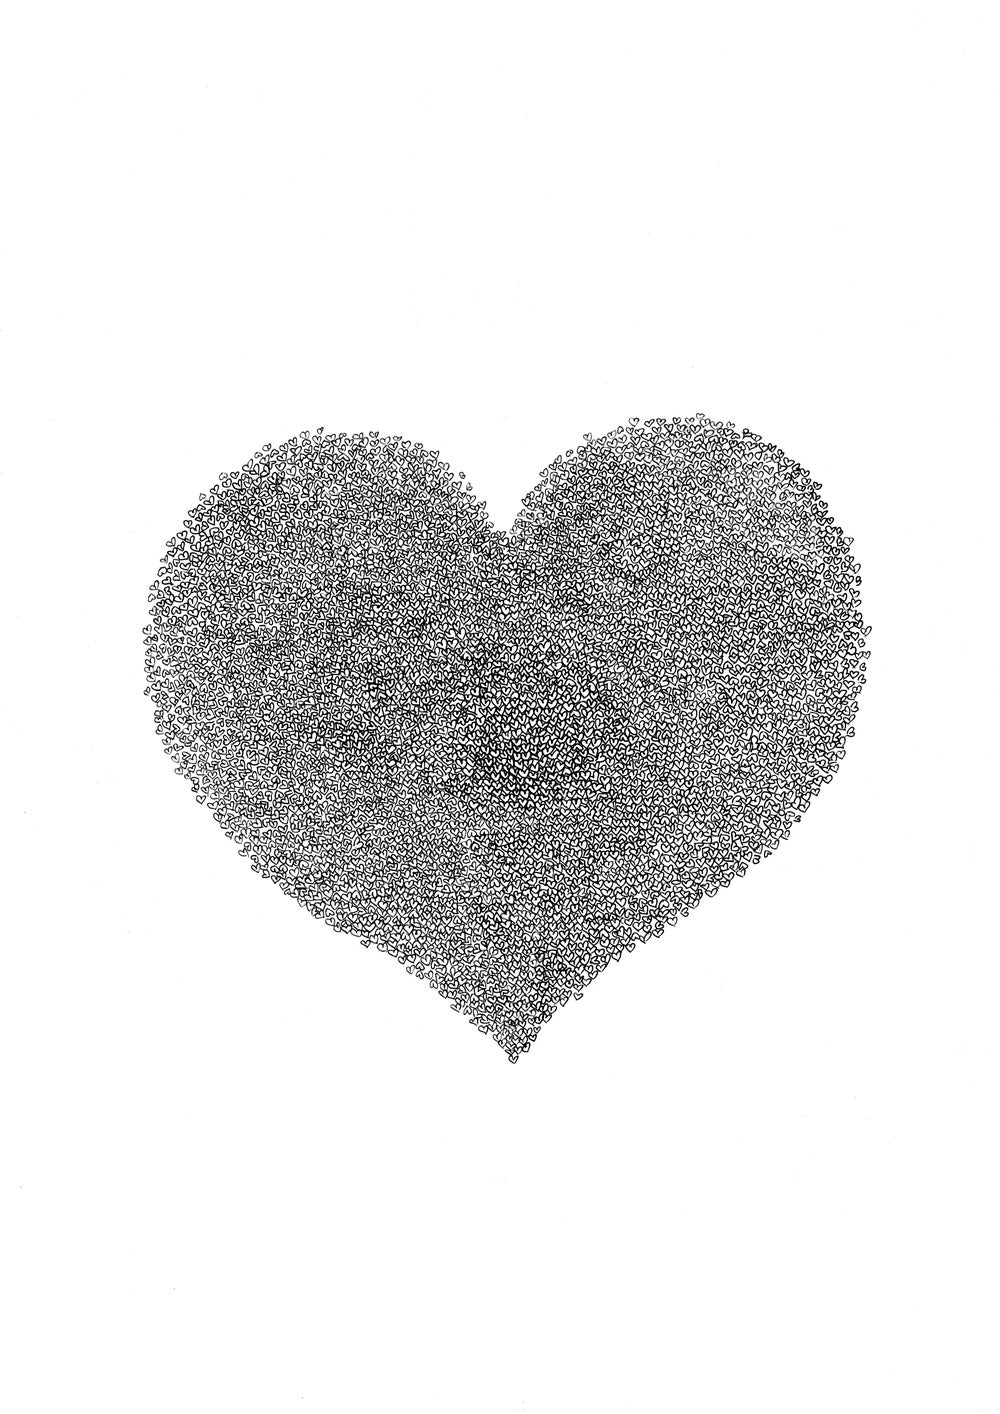 Image of Hearts on hearts